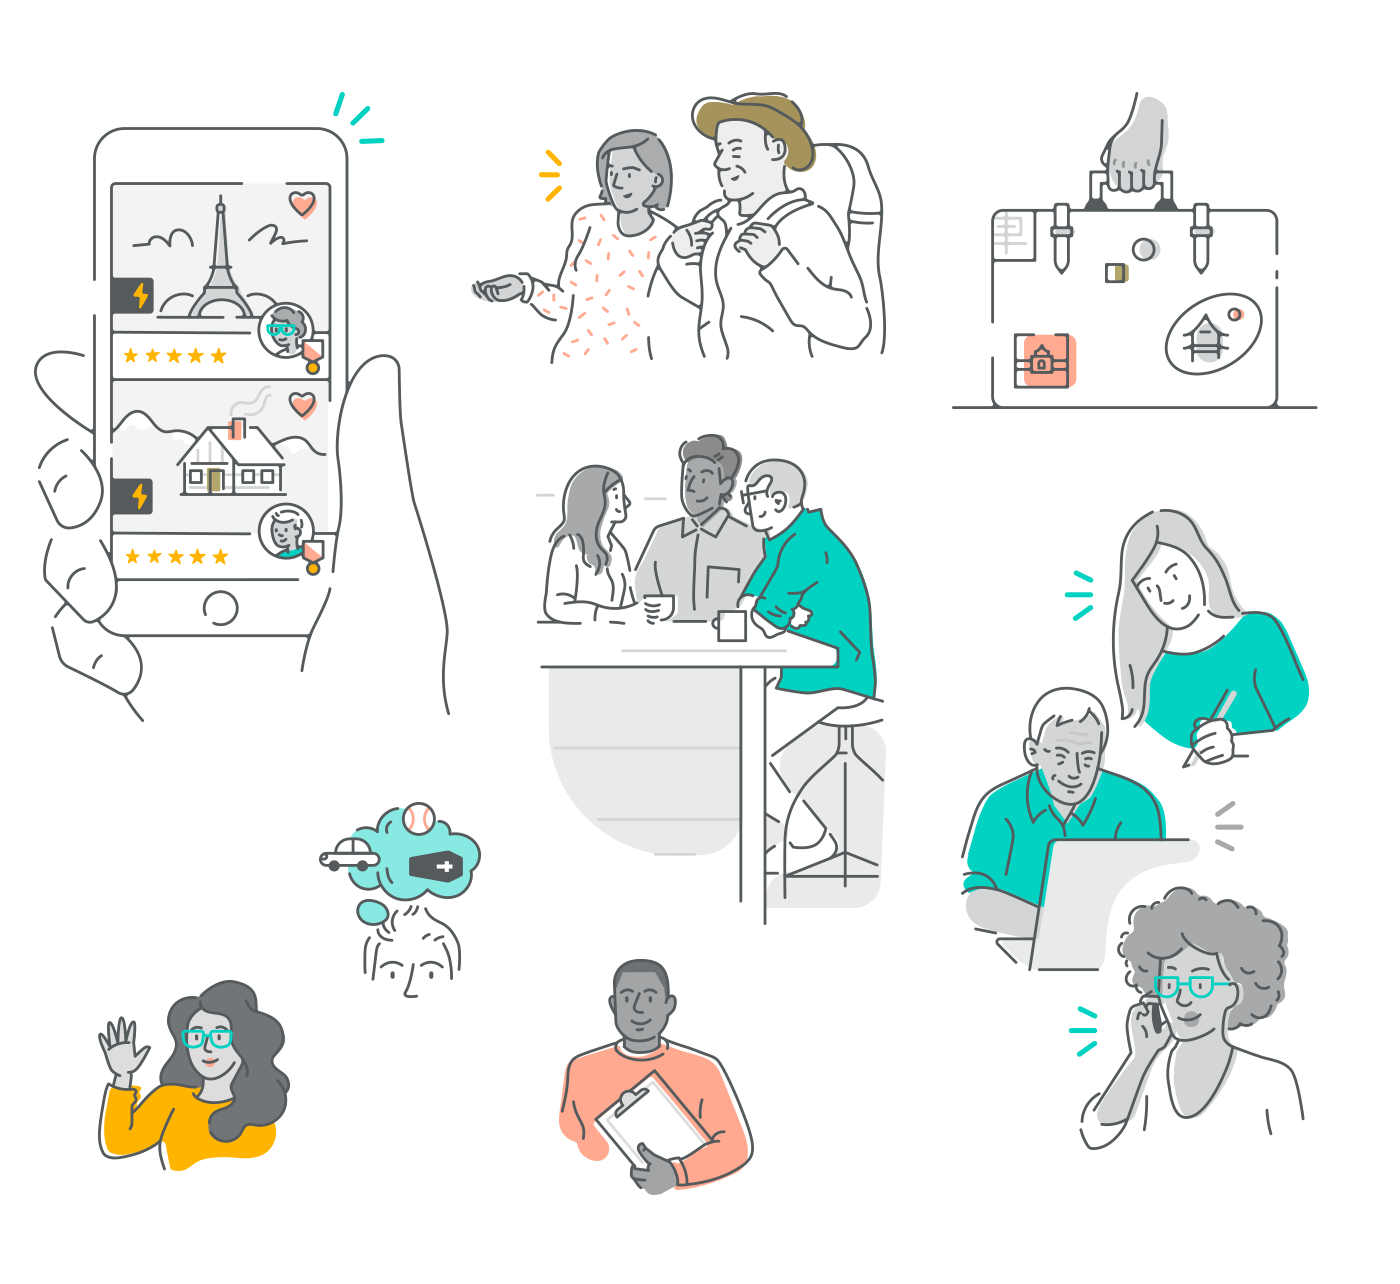 airbnb-illustrations-11.png